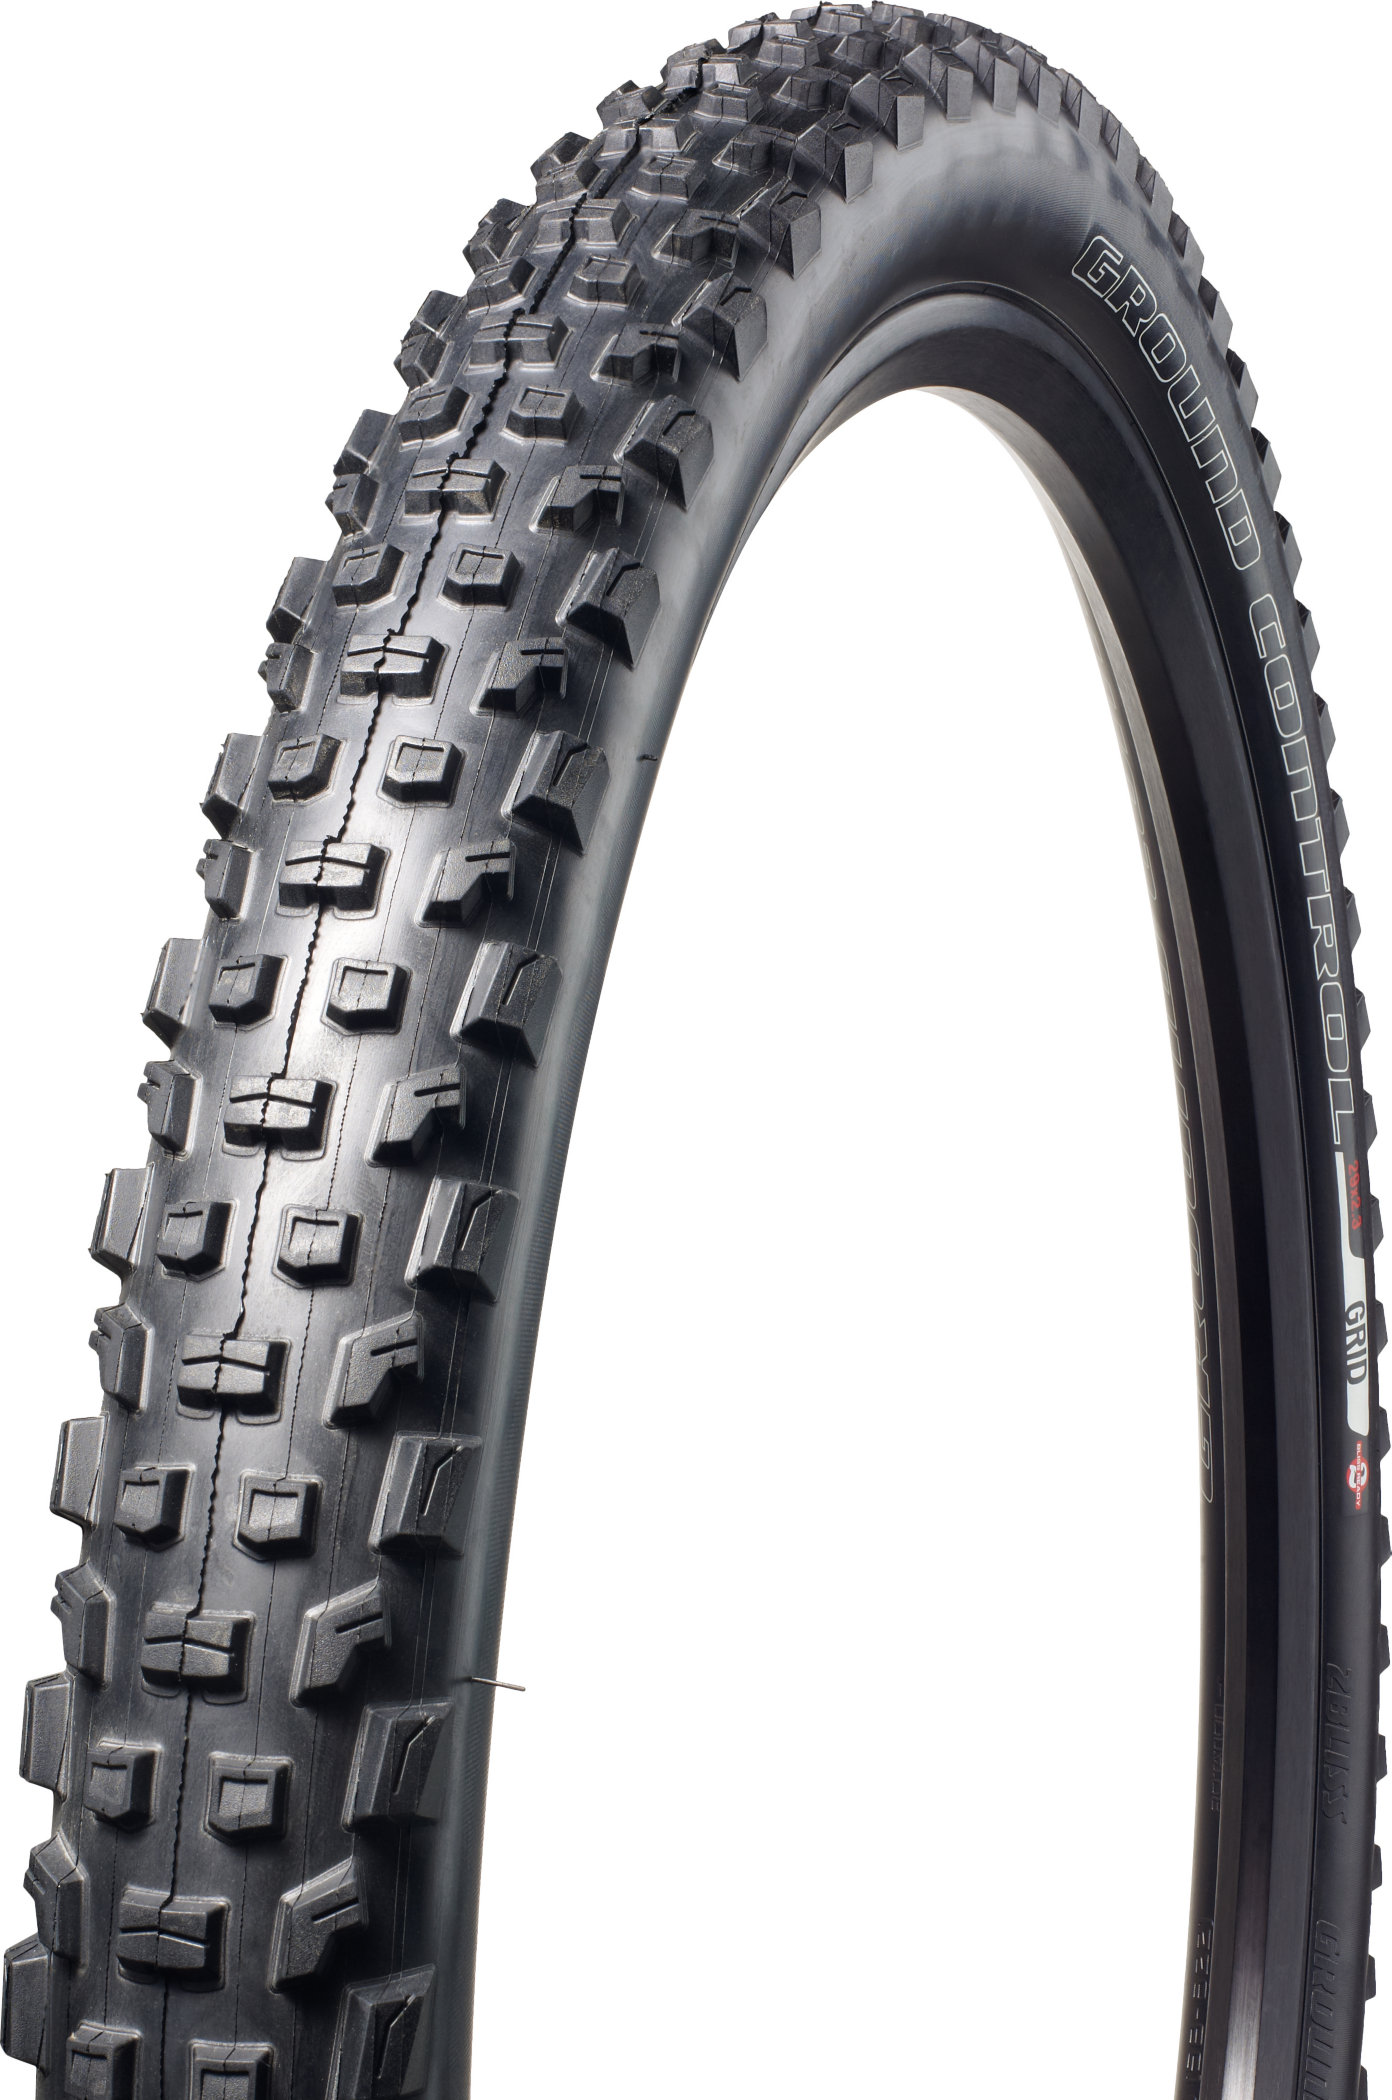 SPECIALIZED GROUND CONTROL GRID 2BR TIRE 650BX2.3 - SPECIALIZED GROUND CONTROL GRID 2BR TIRE 650BX2.3